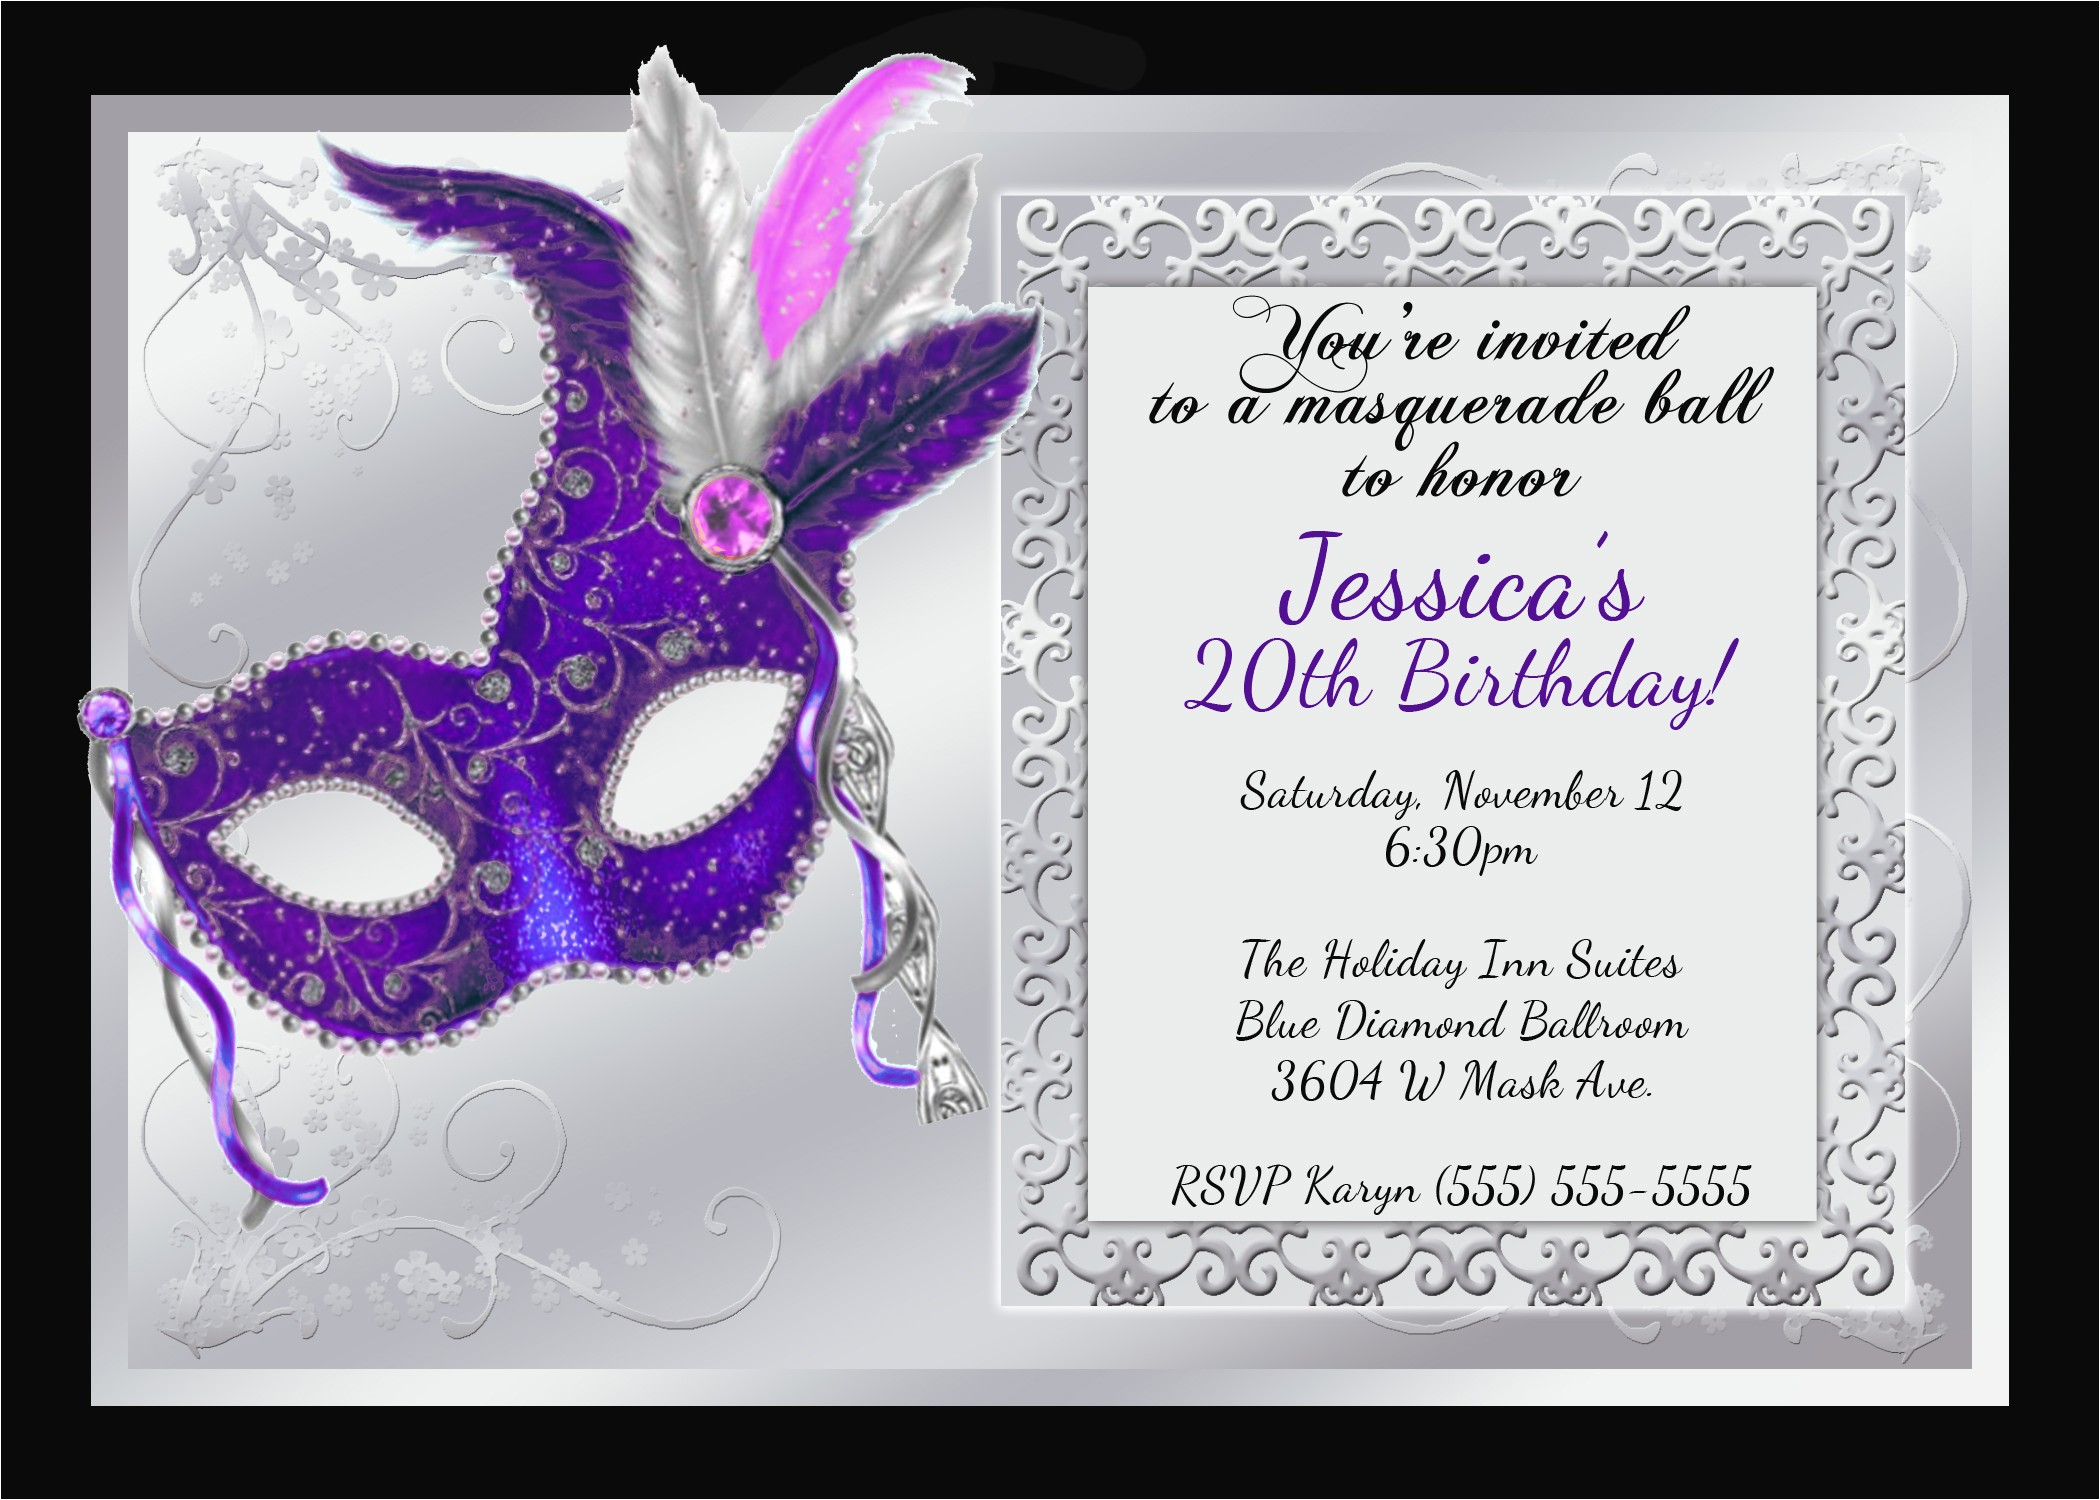 mardi gras and masquerade birthday invitations